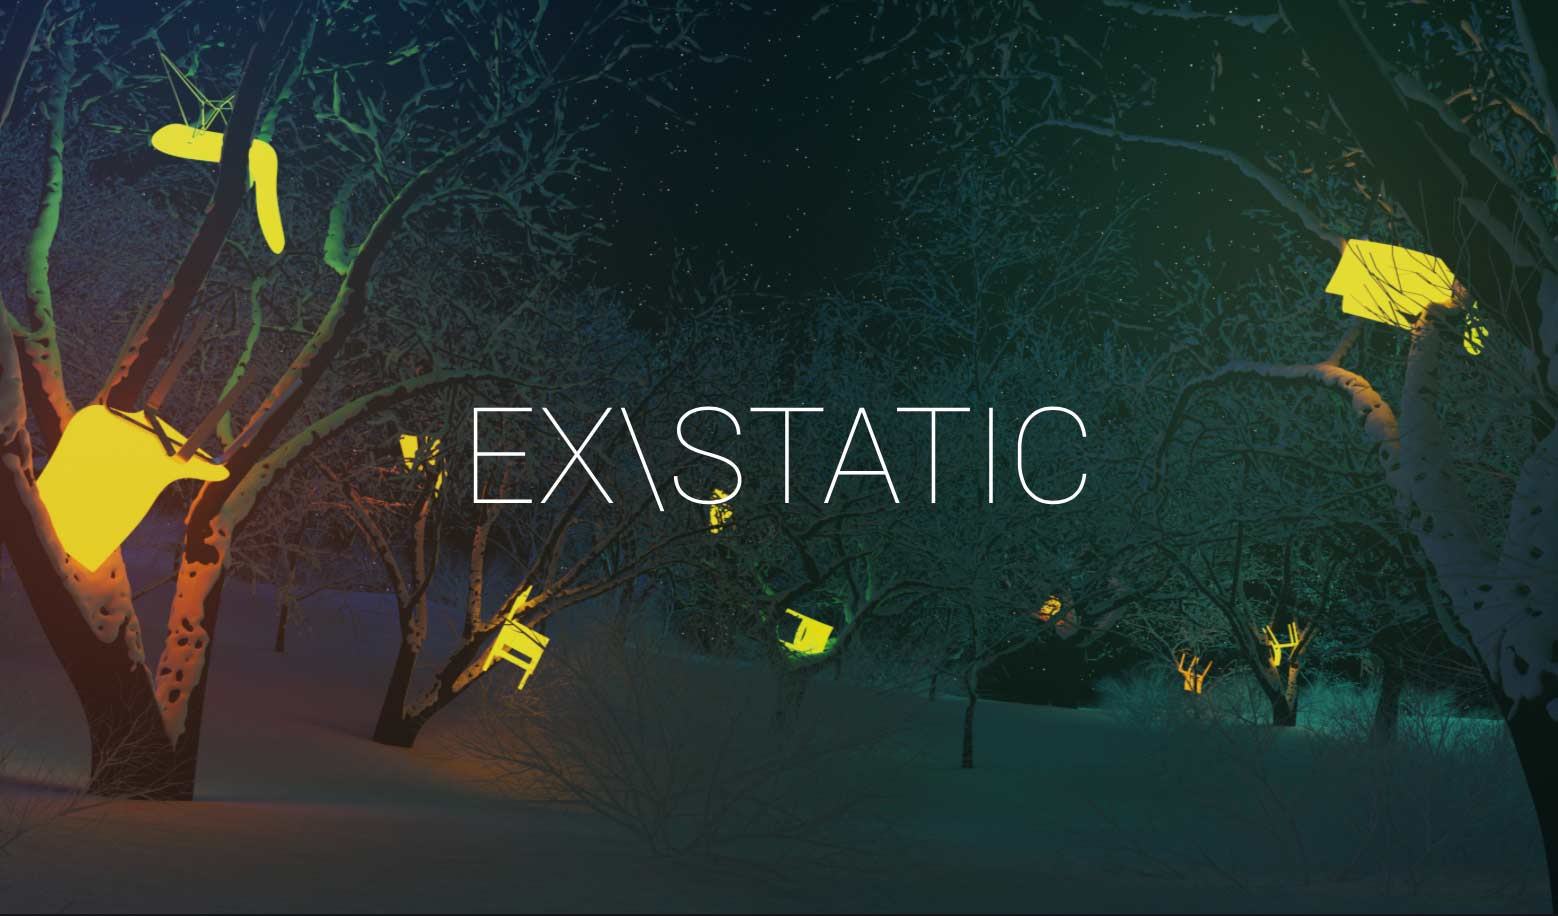 Ex/Static - It's only available on SamsungVR (in the Vimeo section). This is a good example of how to translate an art installation piece into a 360 cinematic experience.